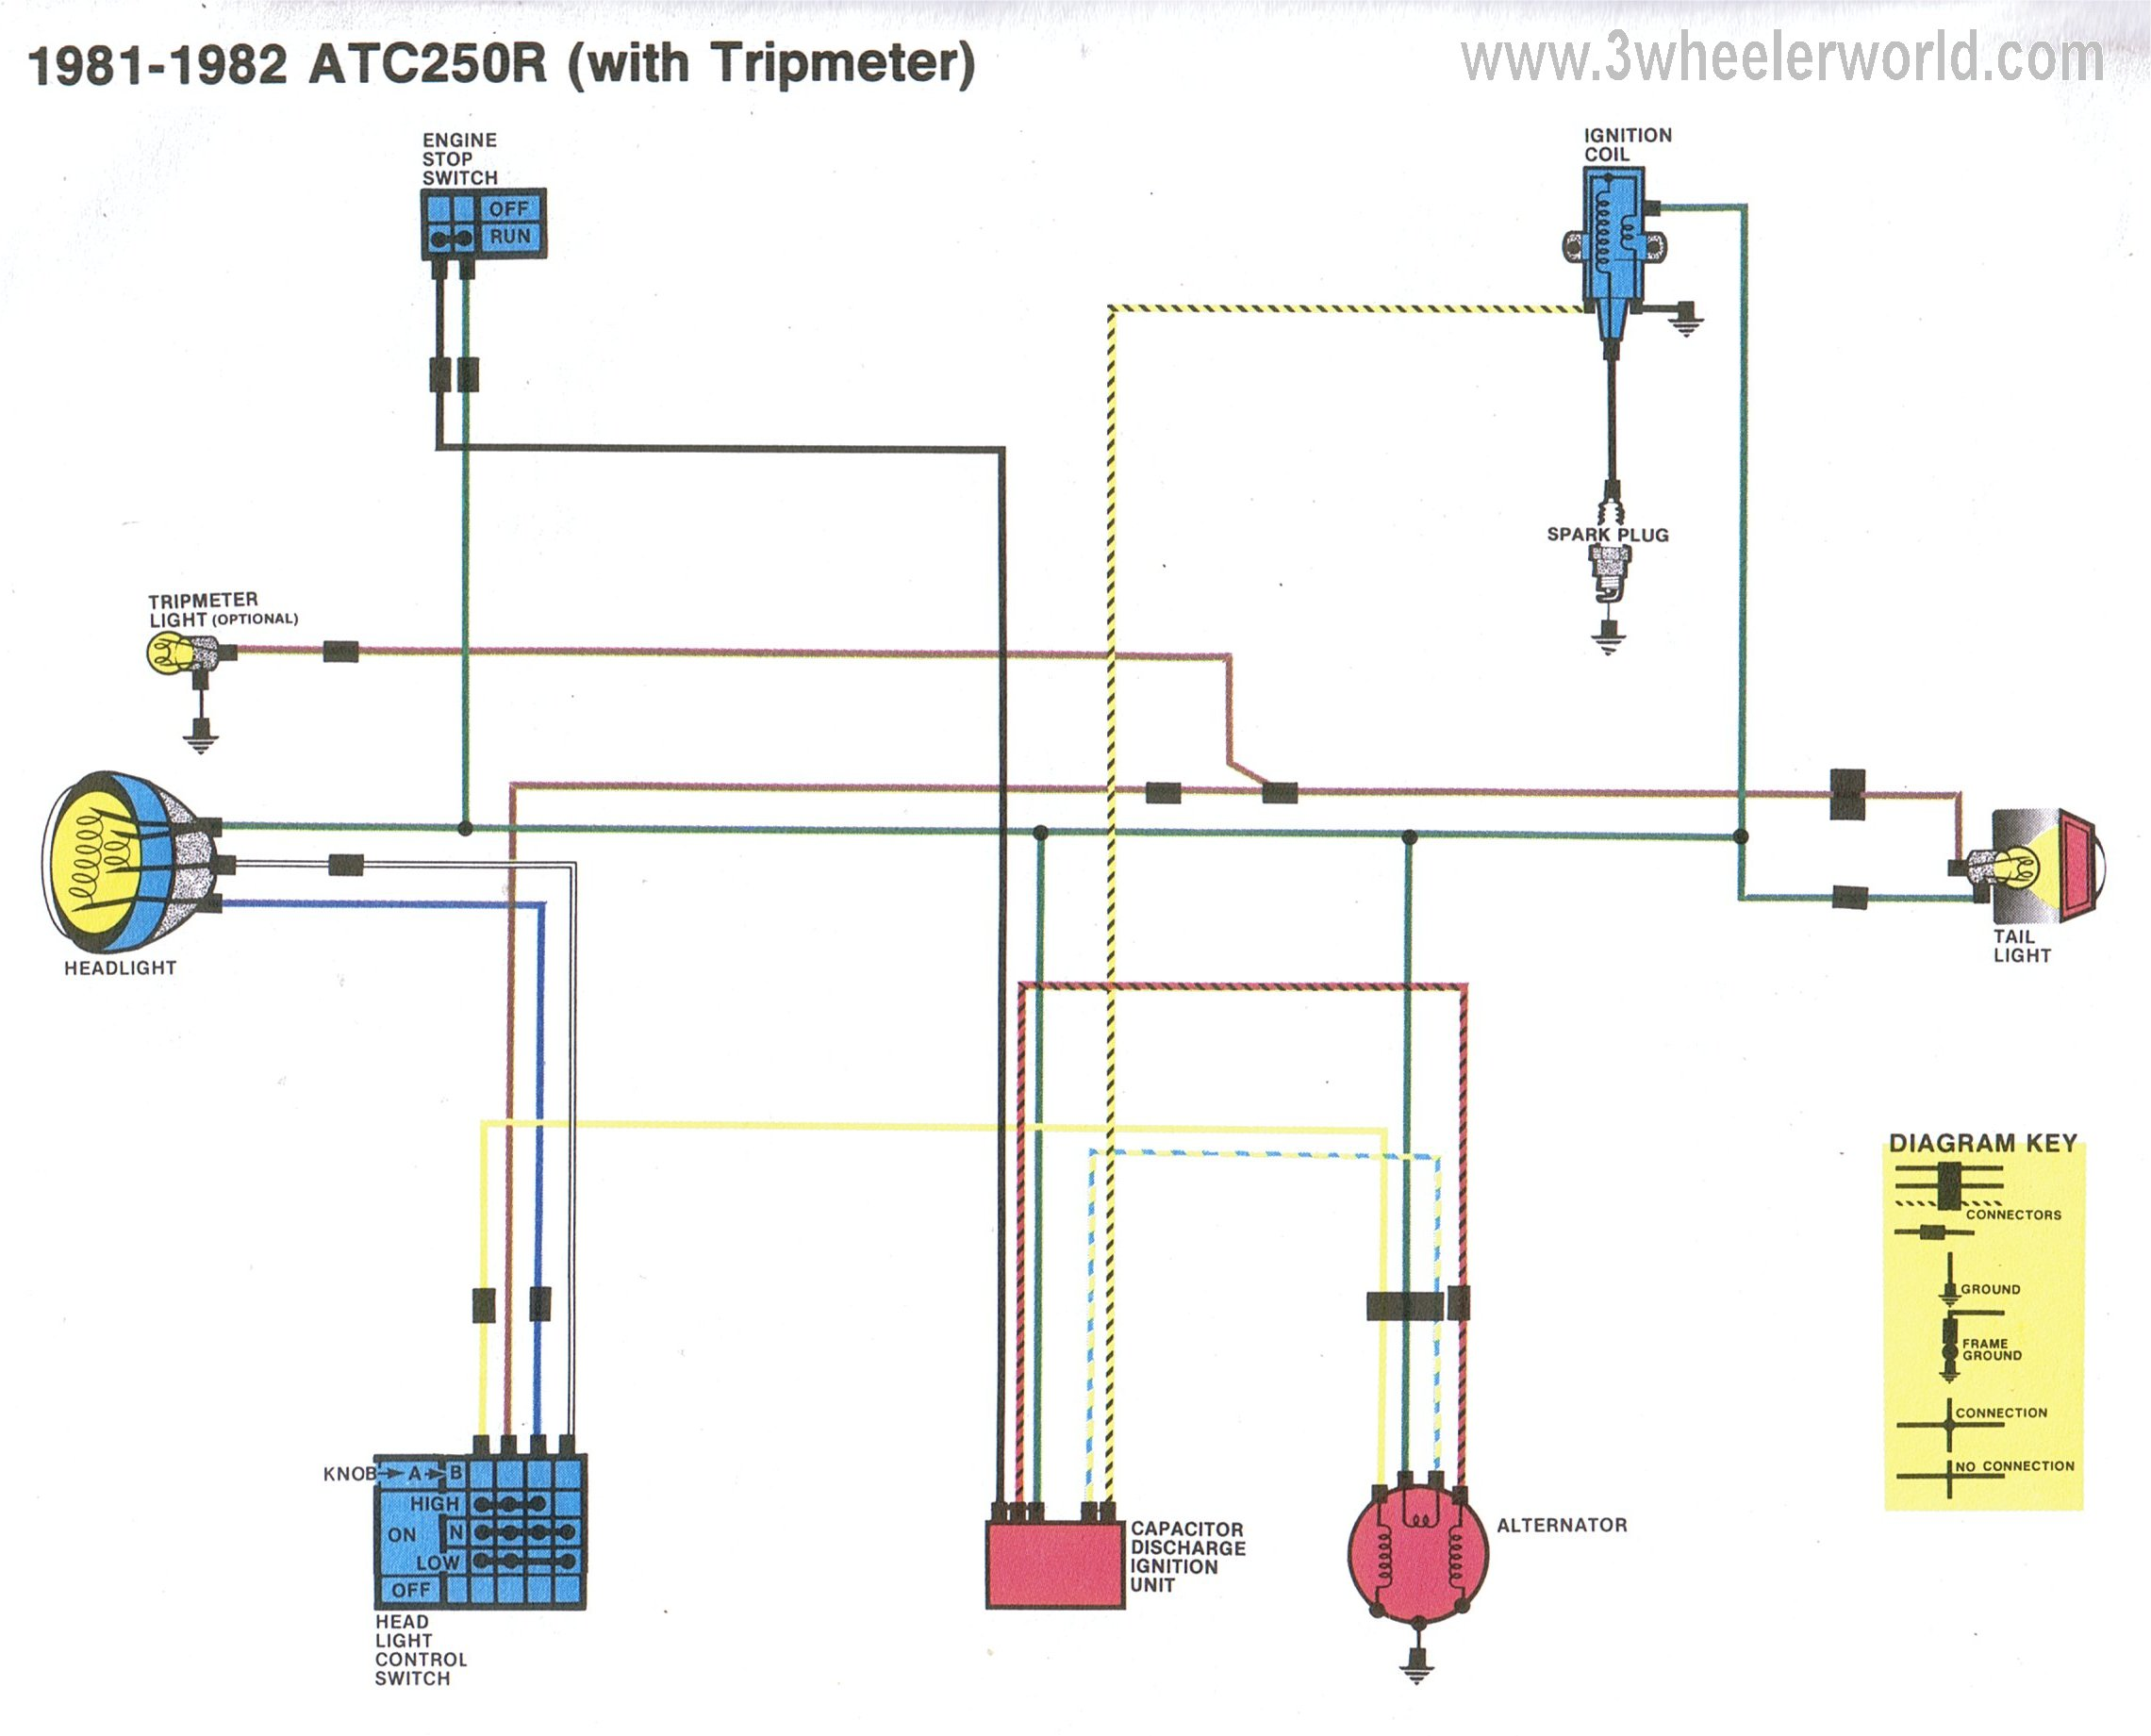 Honda Atc70 Wiring | Wiring Diagram on two speed motor diagram, 2 phase motor, 2 phase solenoid, 2 phase generator, 2 phase compressor, 2 phase 3 wire system, 2 phase electrical, 2 phase transformer diagram, 2 phase circuit, 3 phase motor connection diagram,